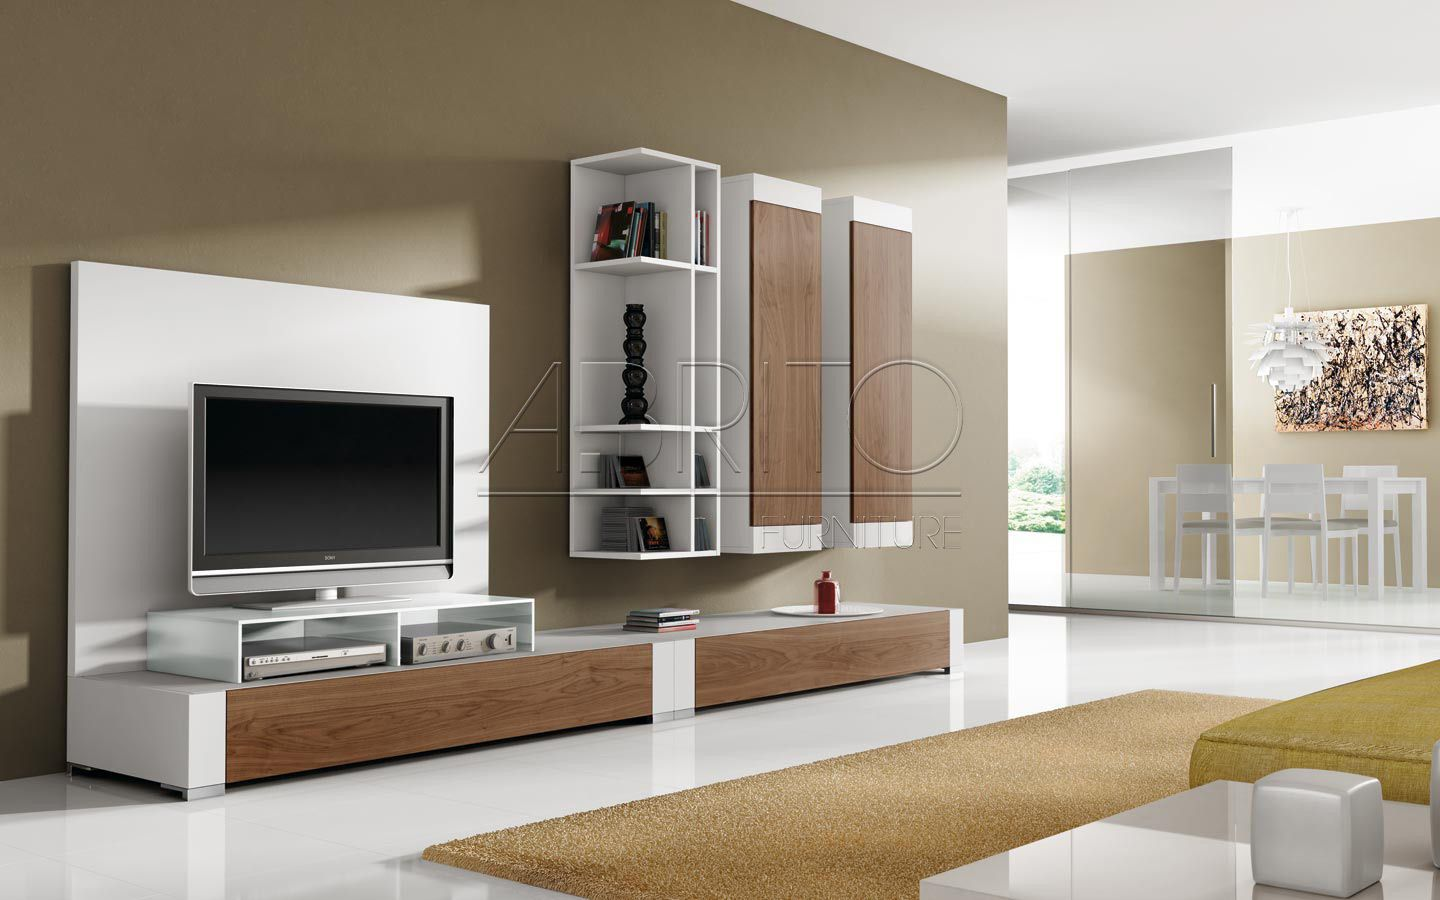 Modern tv wall units images spaces pinterest tv for Modern living room shelving units